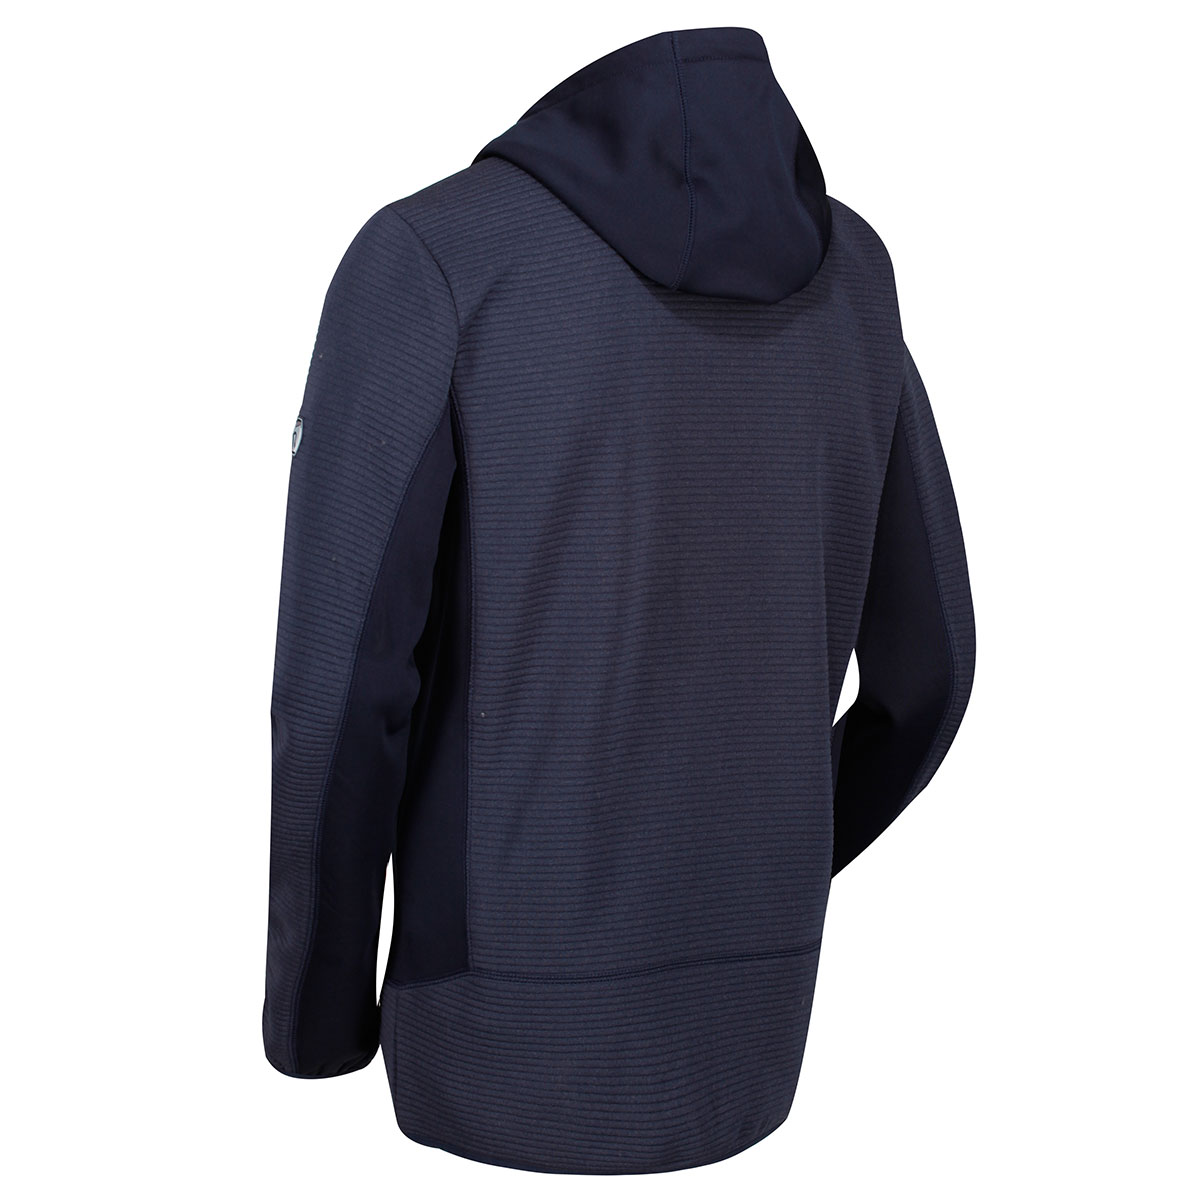 Regatta-Mens-Tarnis-II-Ribbed-Fabric-Stretch-Hoody-Jacket-70-OFF-RRP thumbnail 7